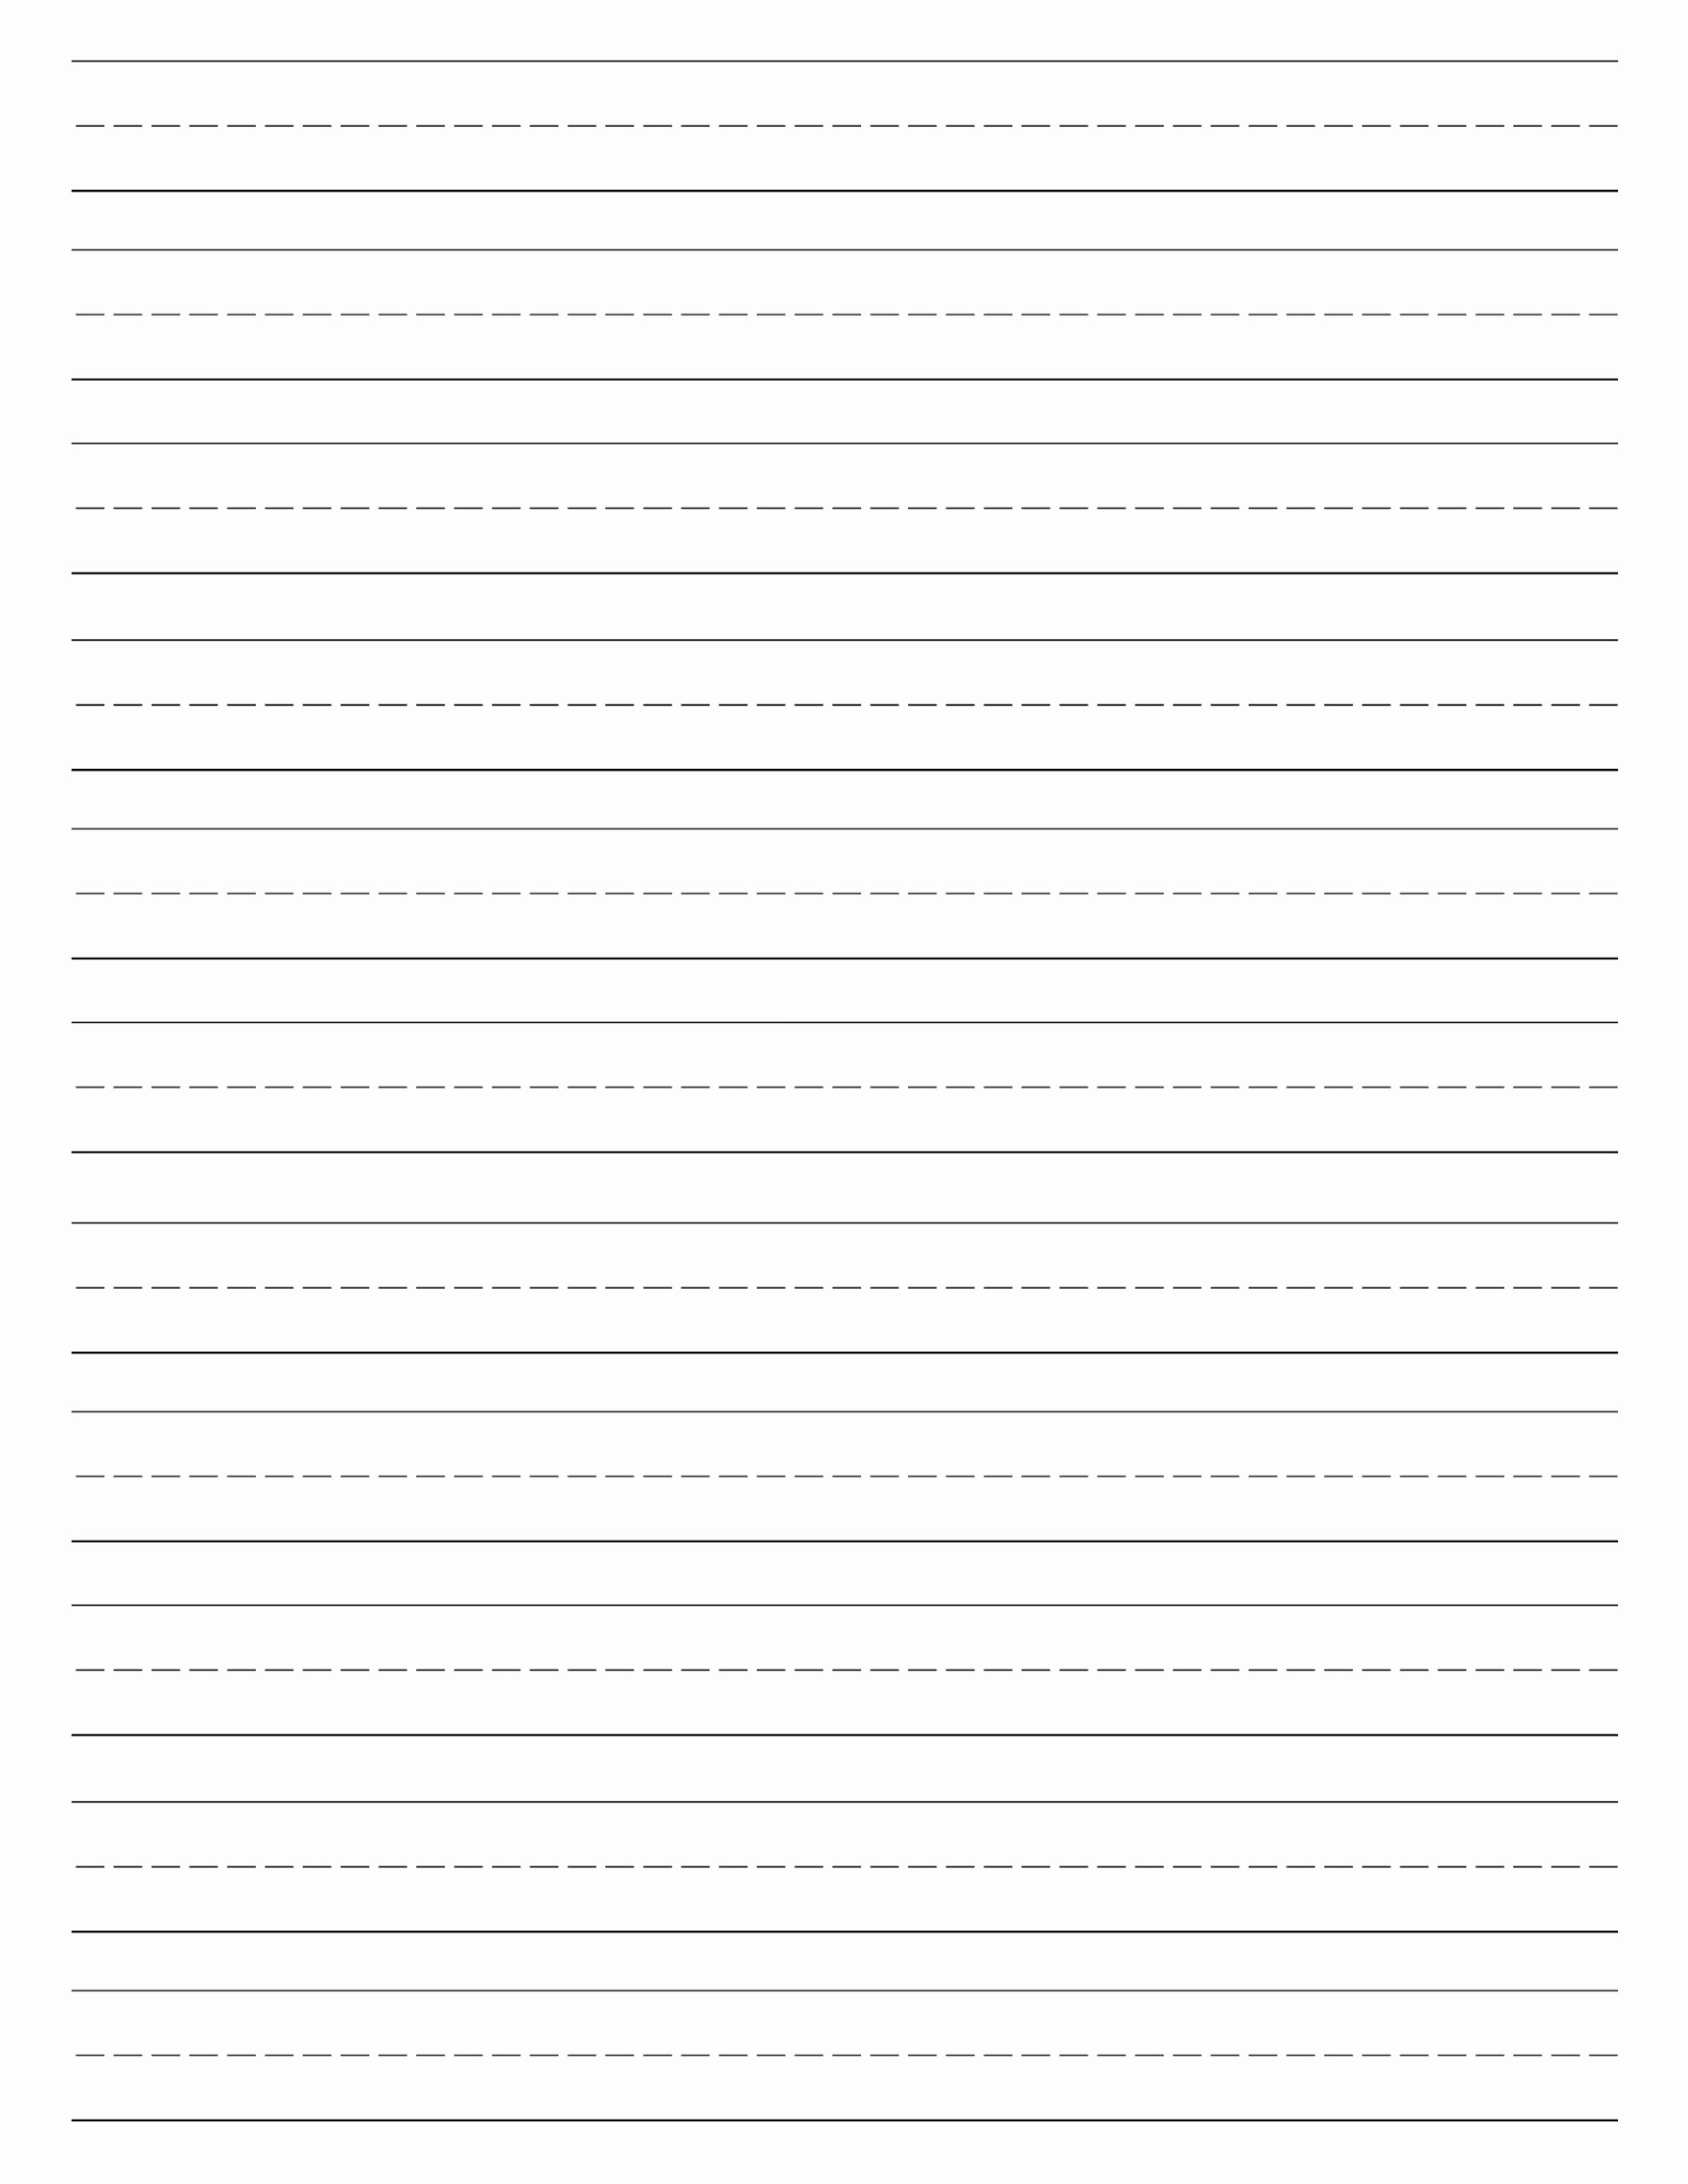 Printable Lined Paper Pdf Luxury Free Printable Lined Paper Handwriting Paper Template